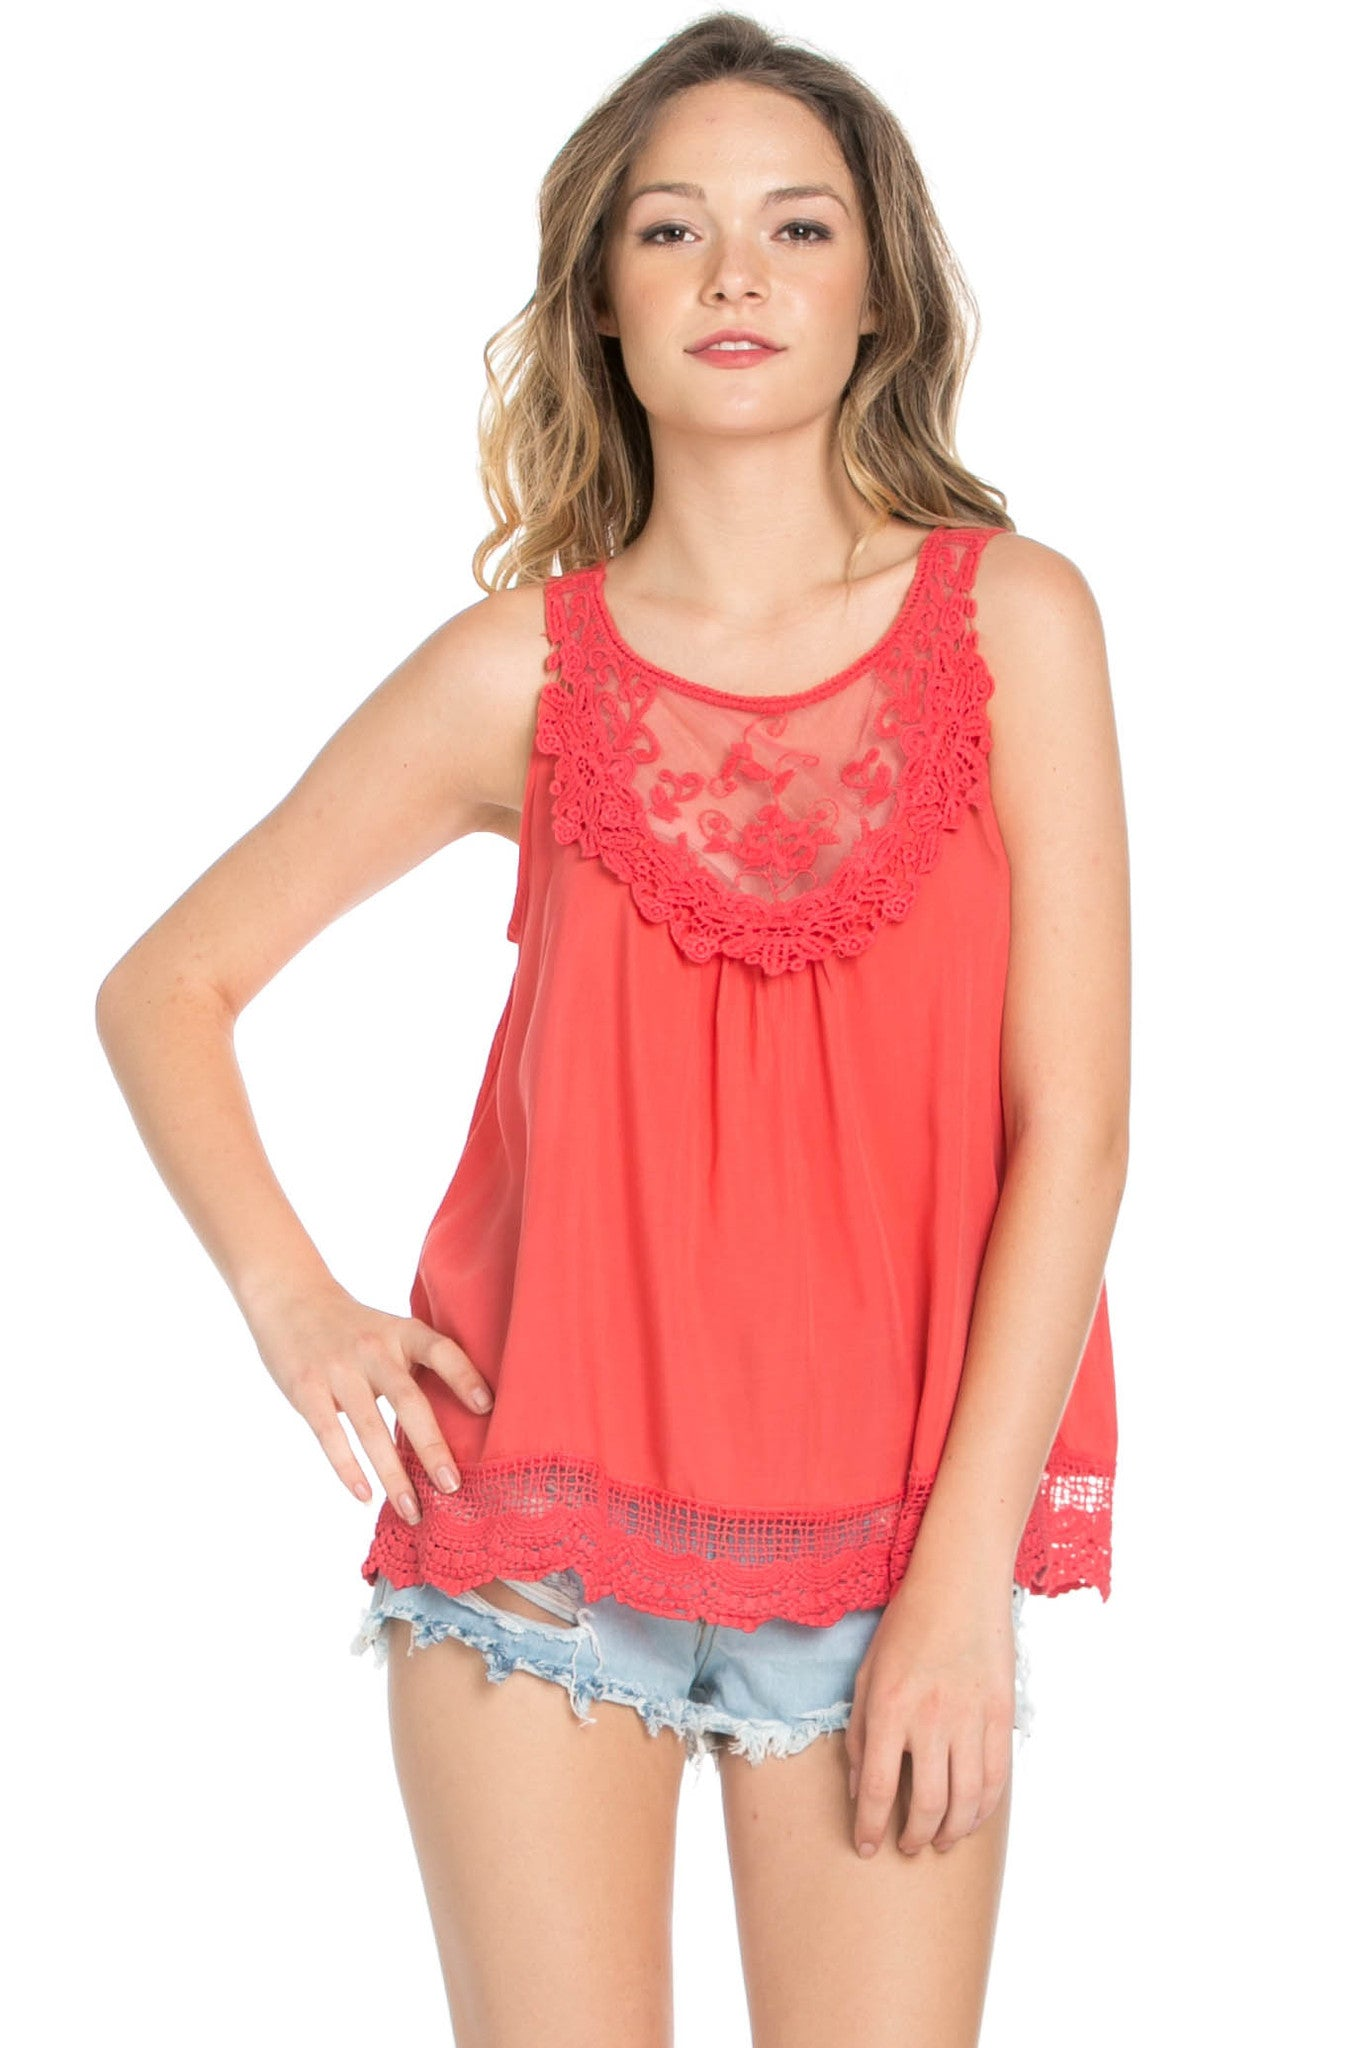 Crochets and Lace Coral Top - Tops - My Yuccie - 2